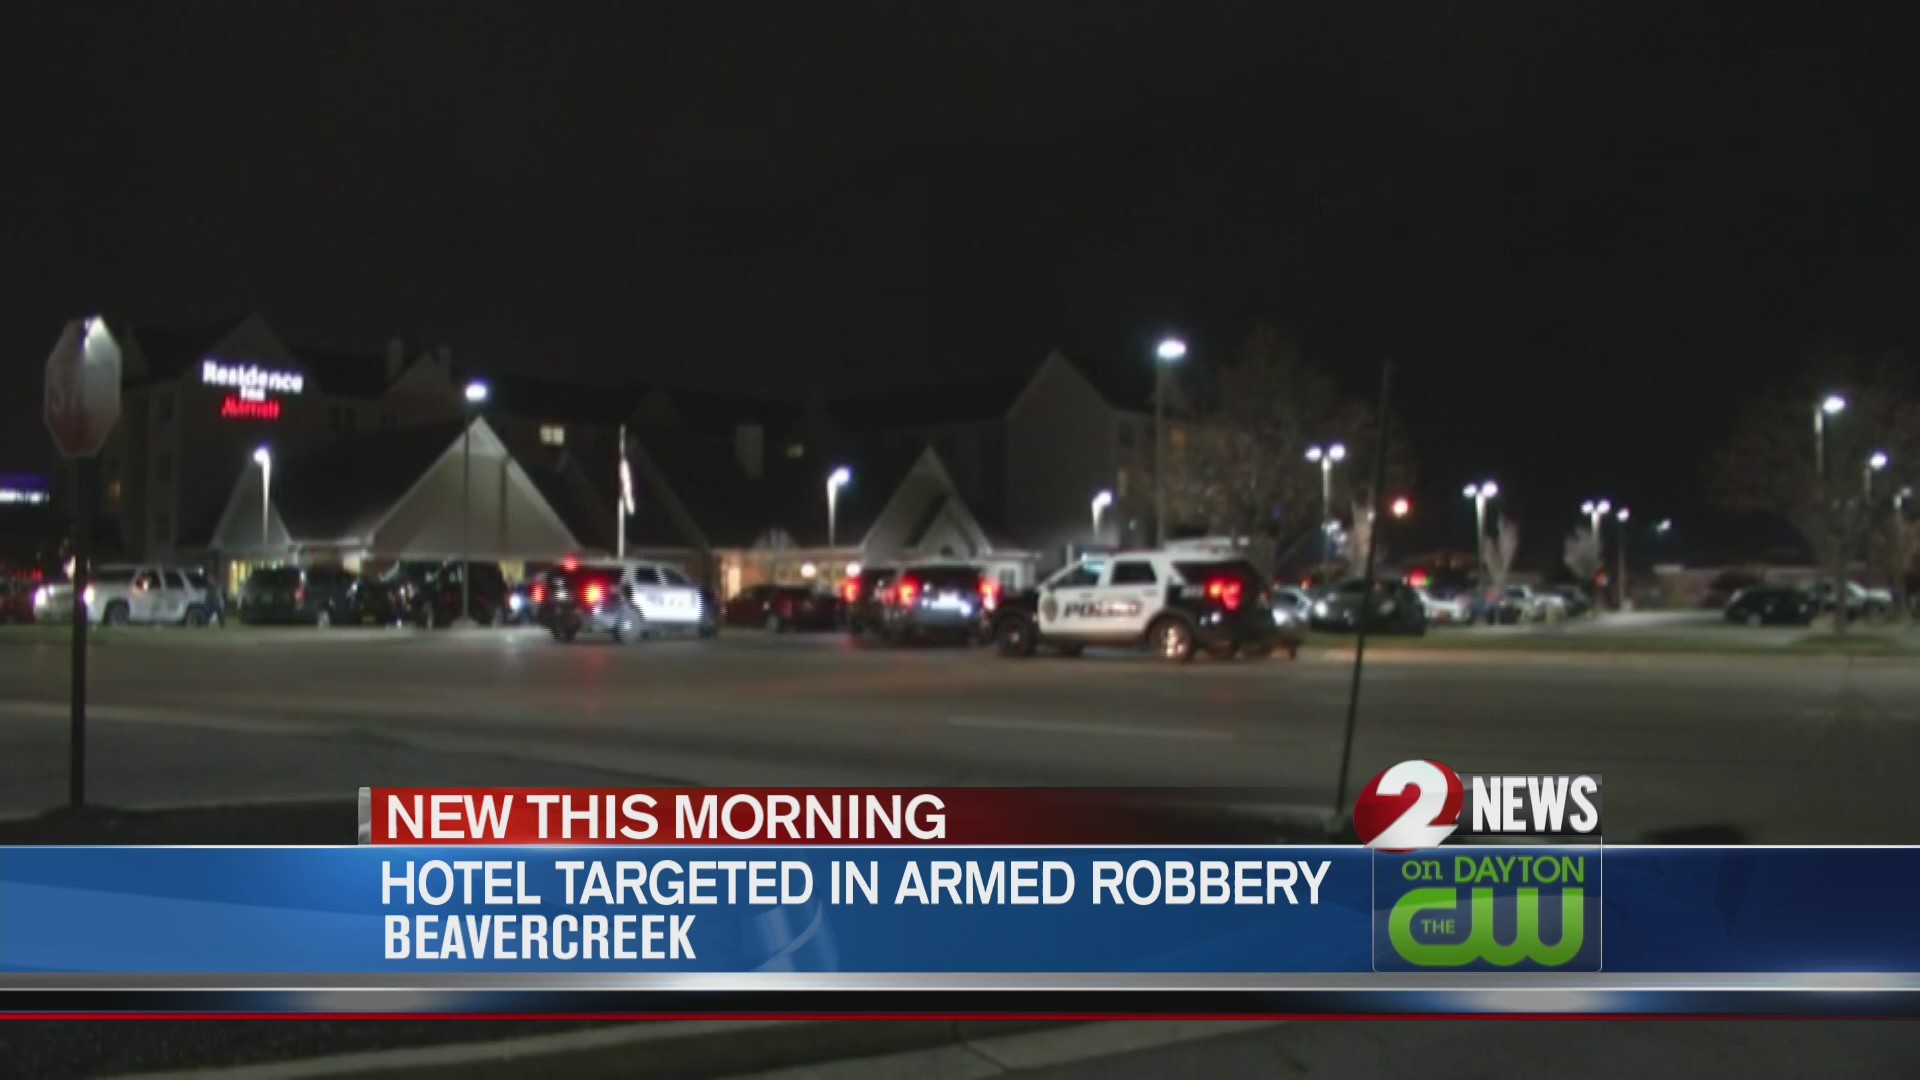 Man robs Beavercreek hotel at gunpoint